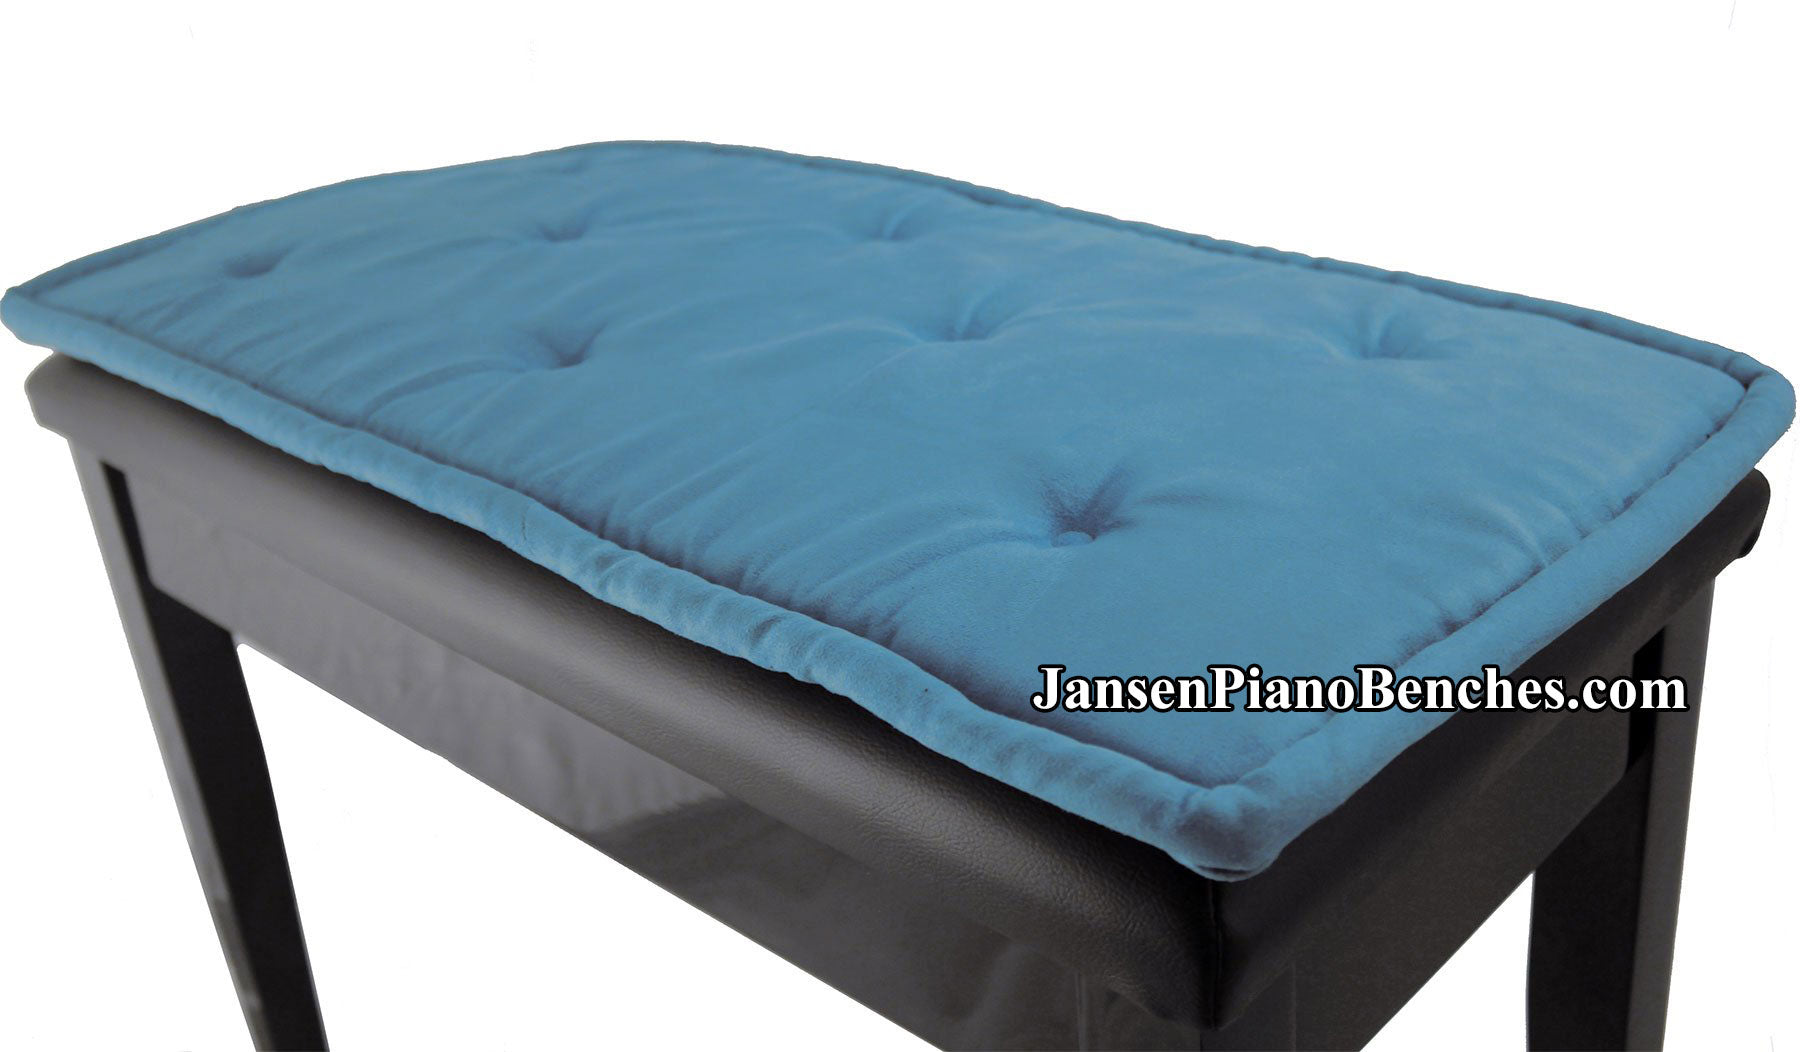 Picture of: Jansen Piano Bench Cushions Jansen Piano Benches